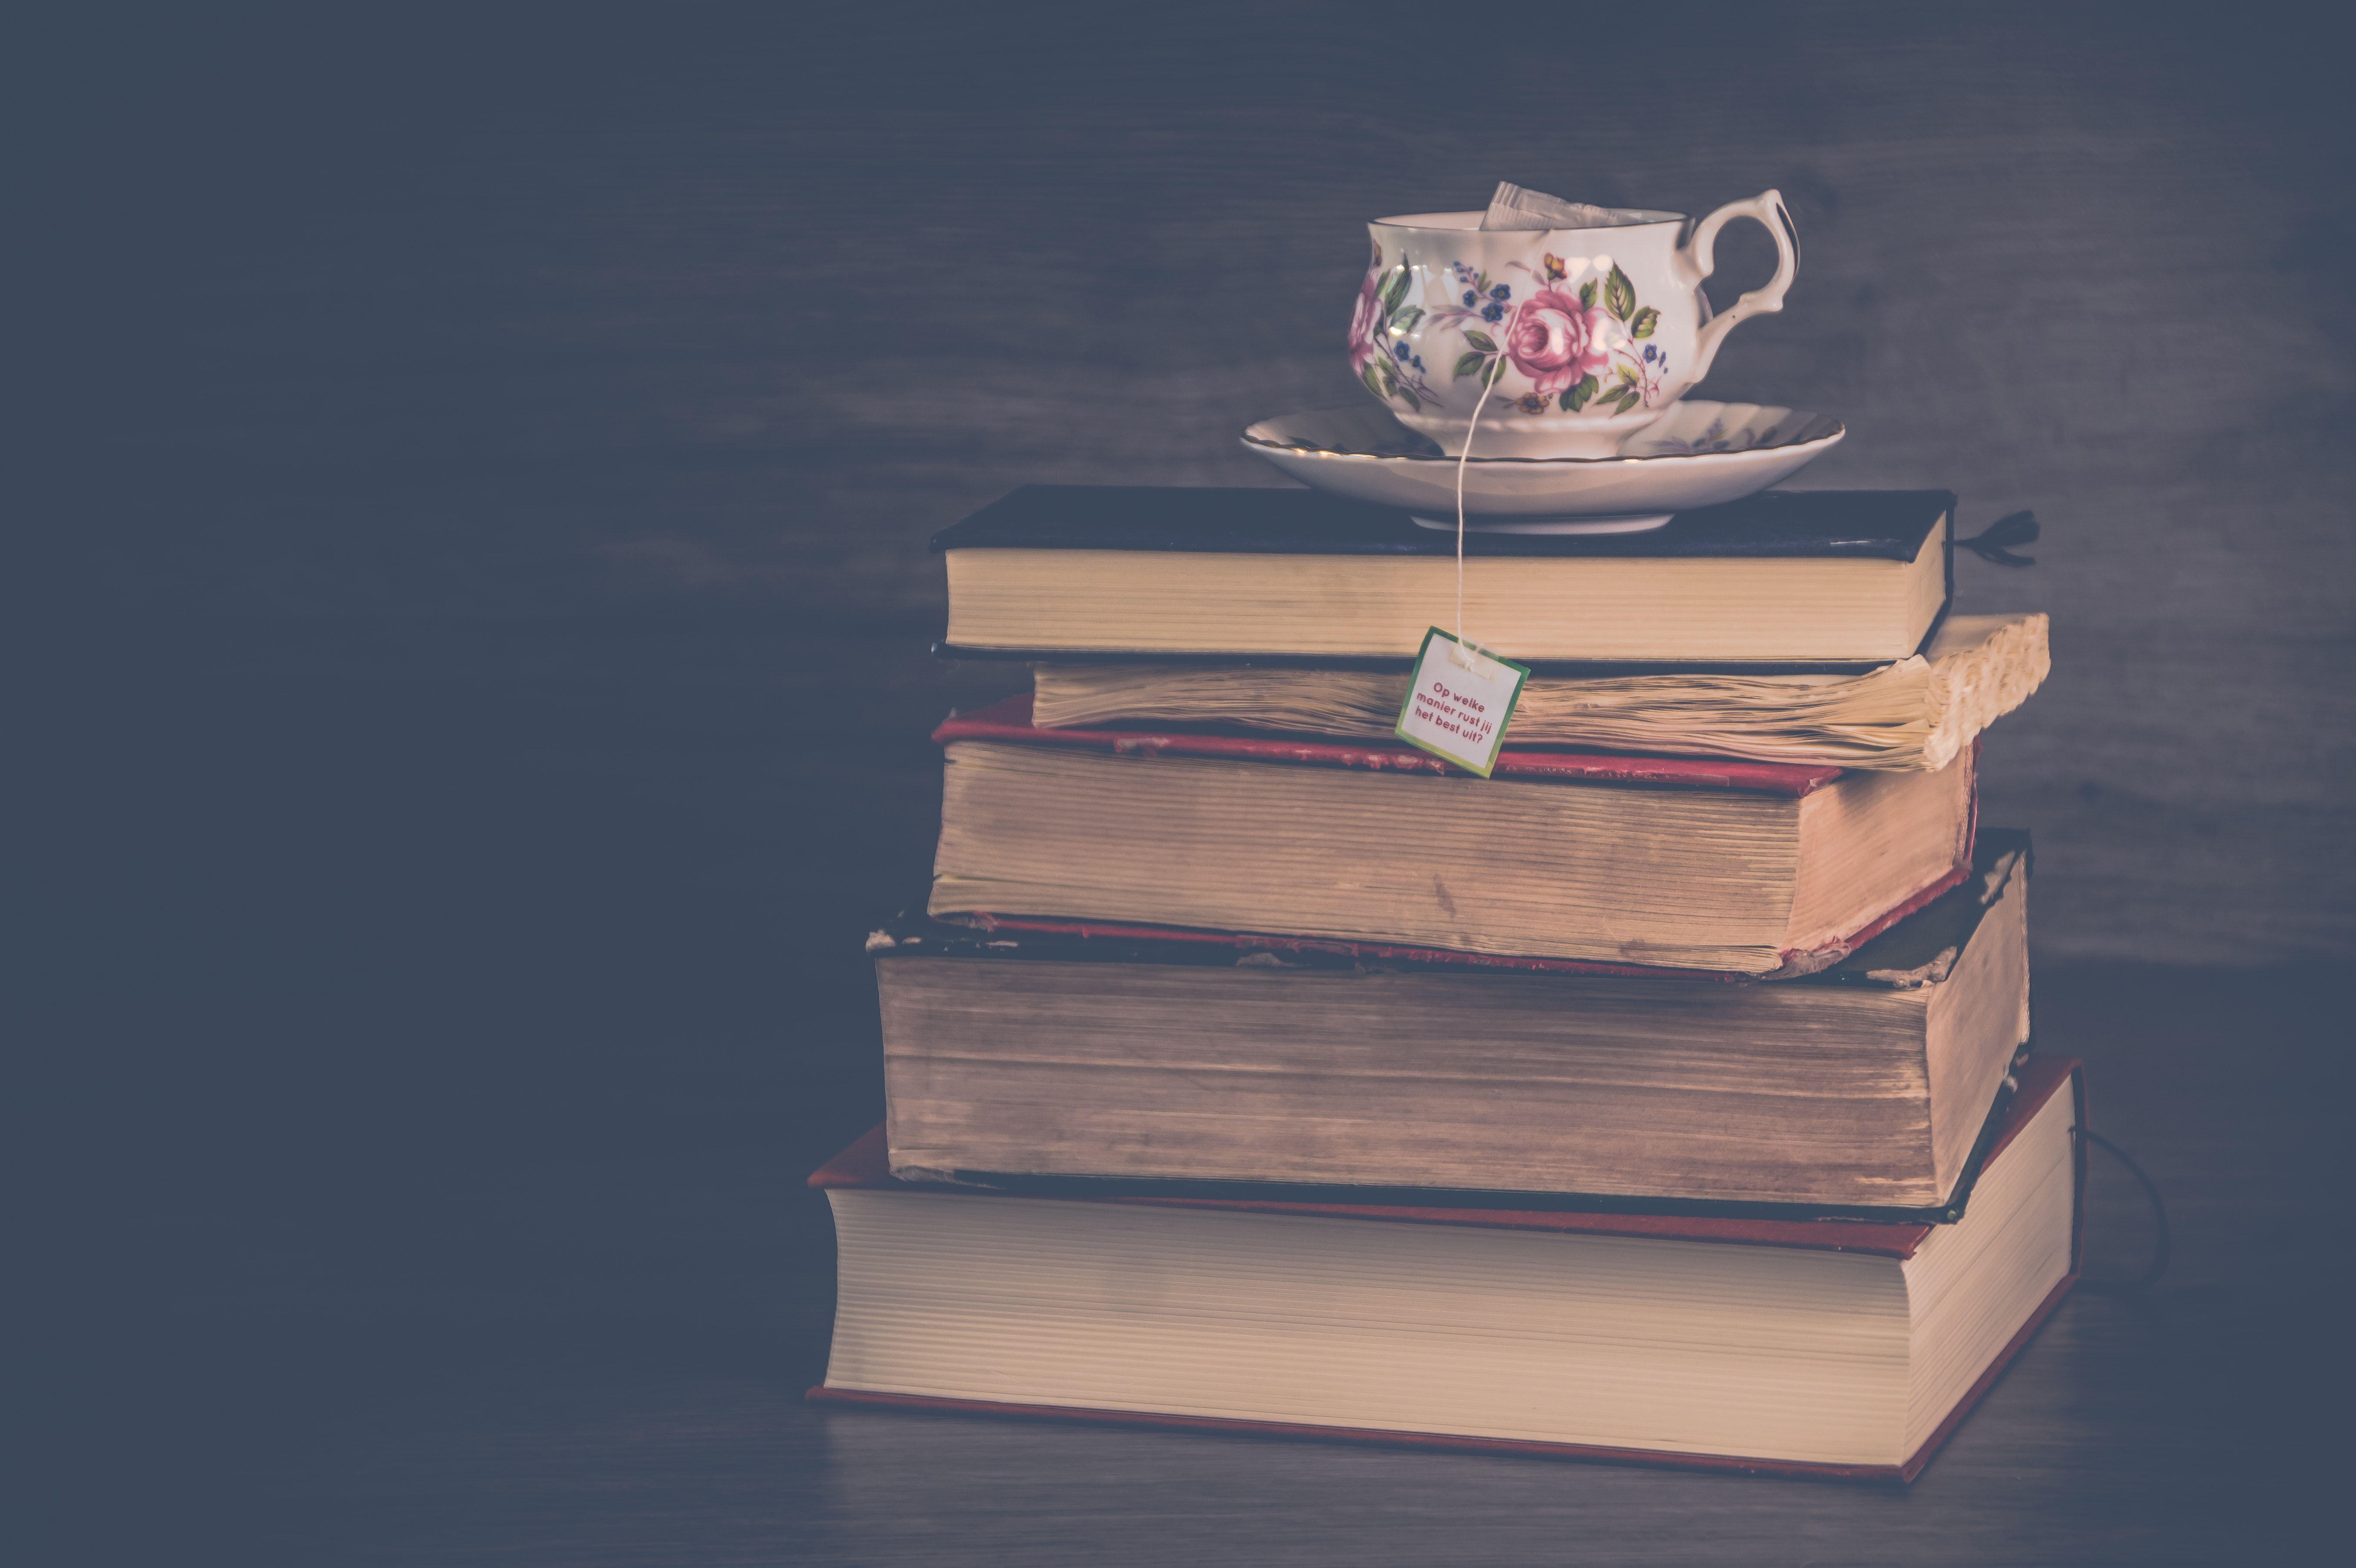 Pile of hardbound books with white and pink floral ceramic teacup and saucer photo